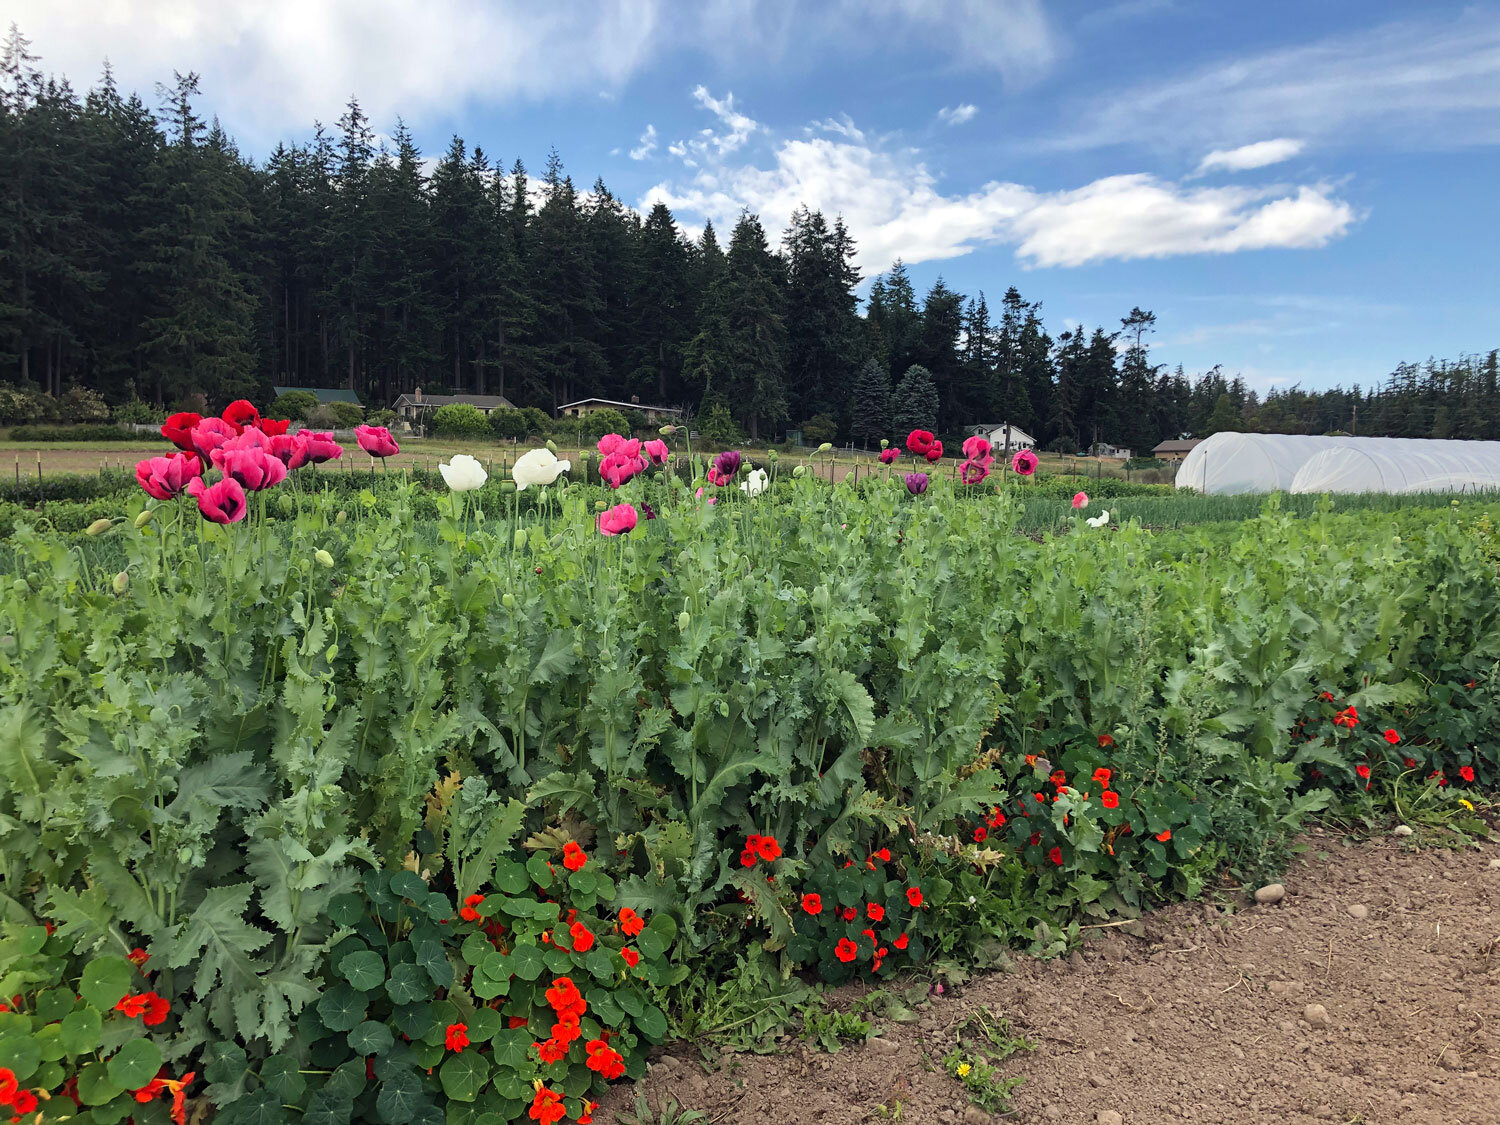 A row of brightly colored poppies and nasturtium